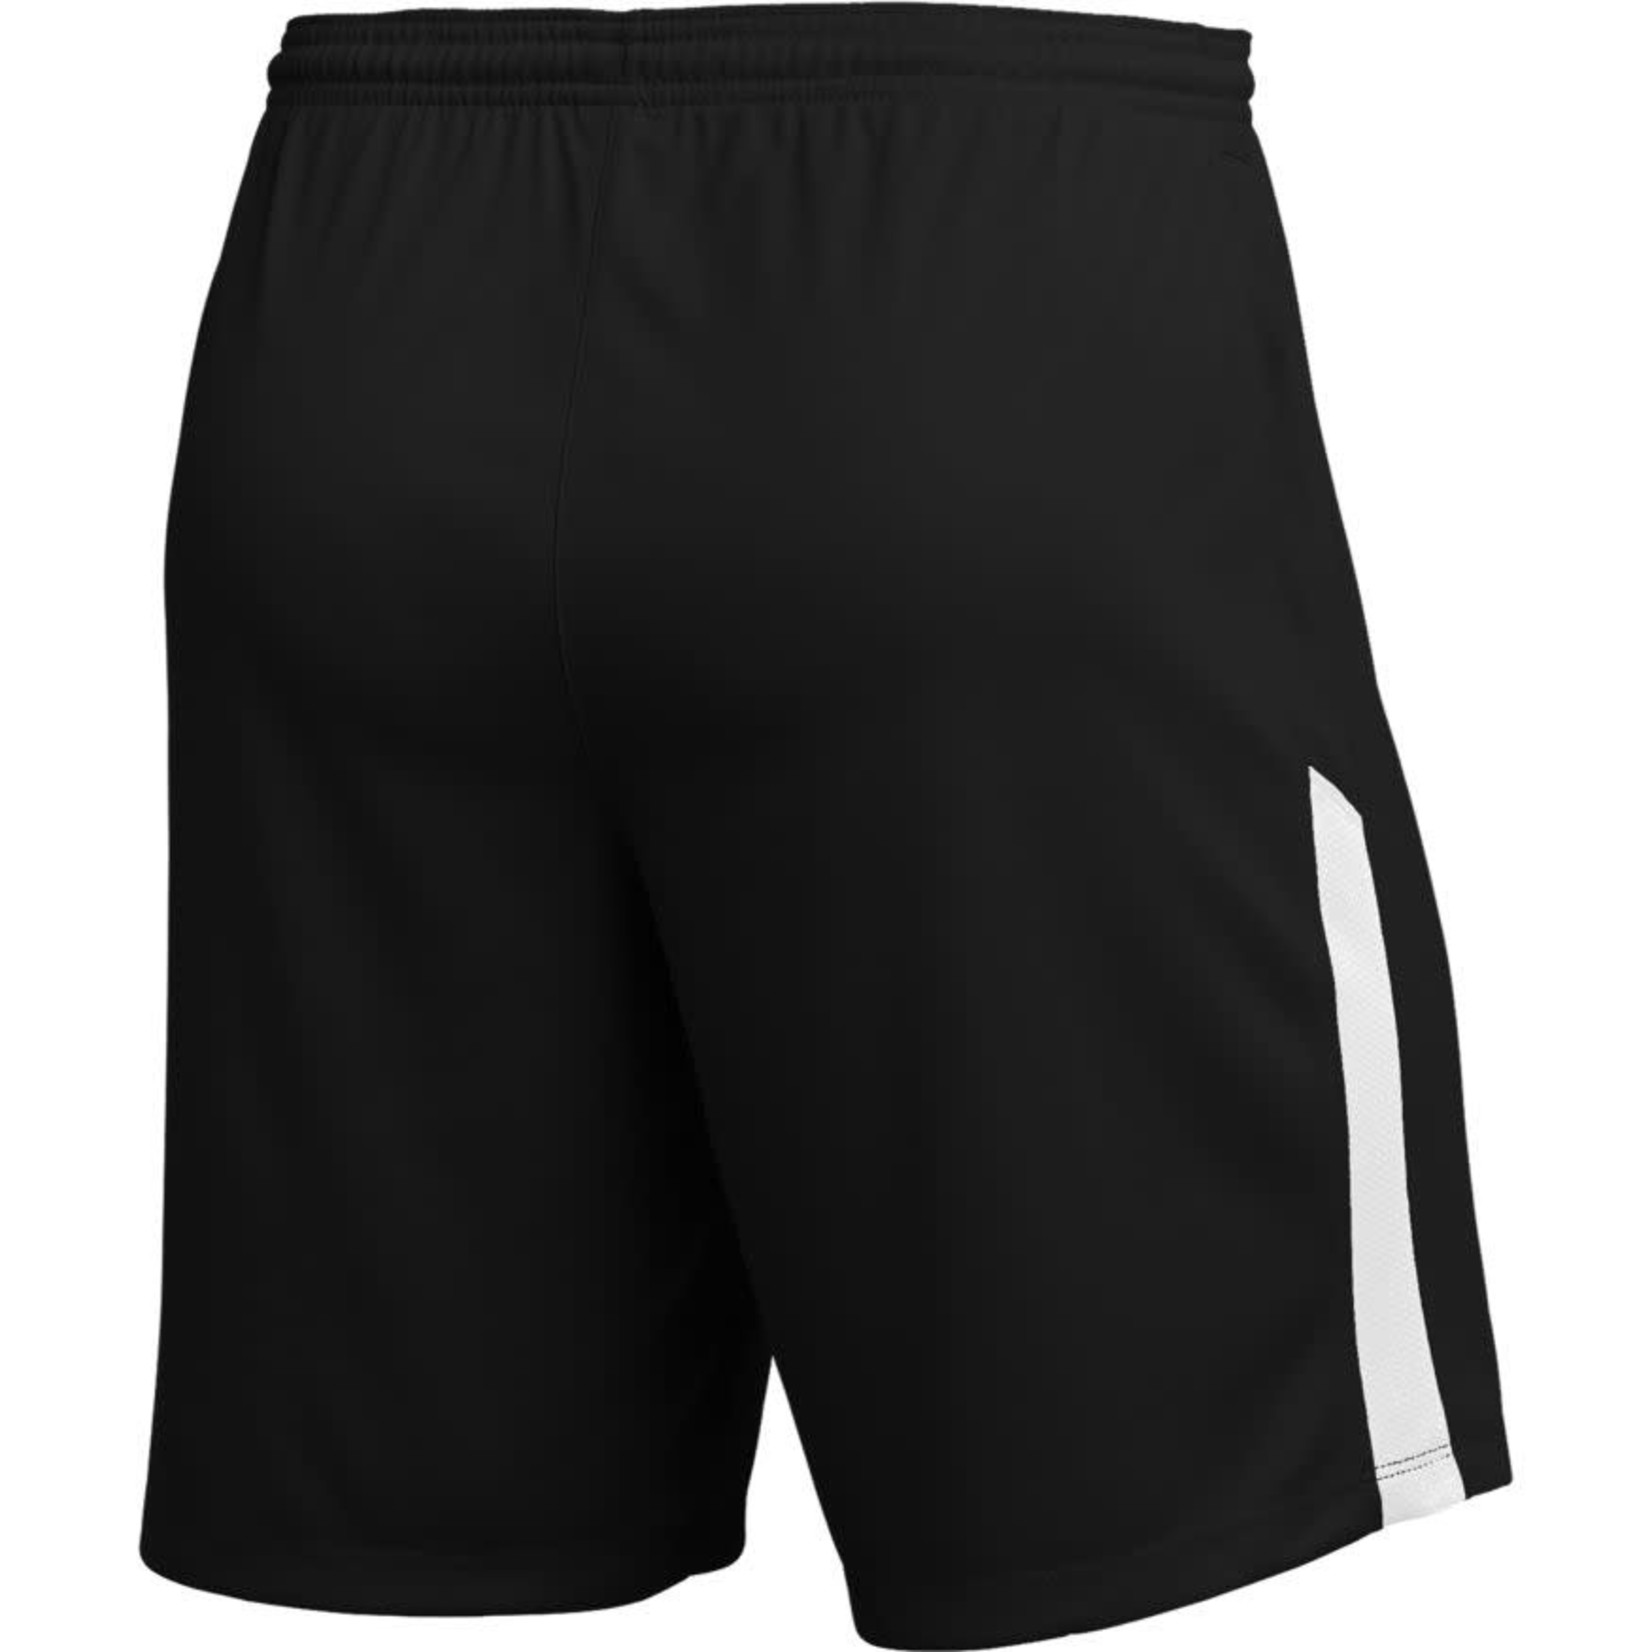 NIKE LEAGUE KNIT II SHORT